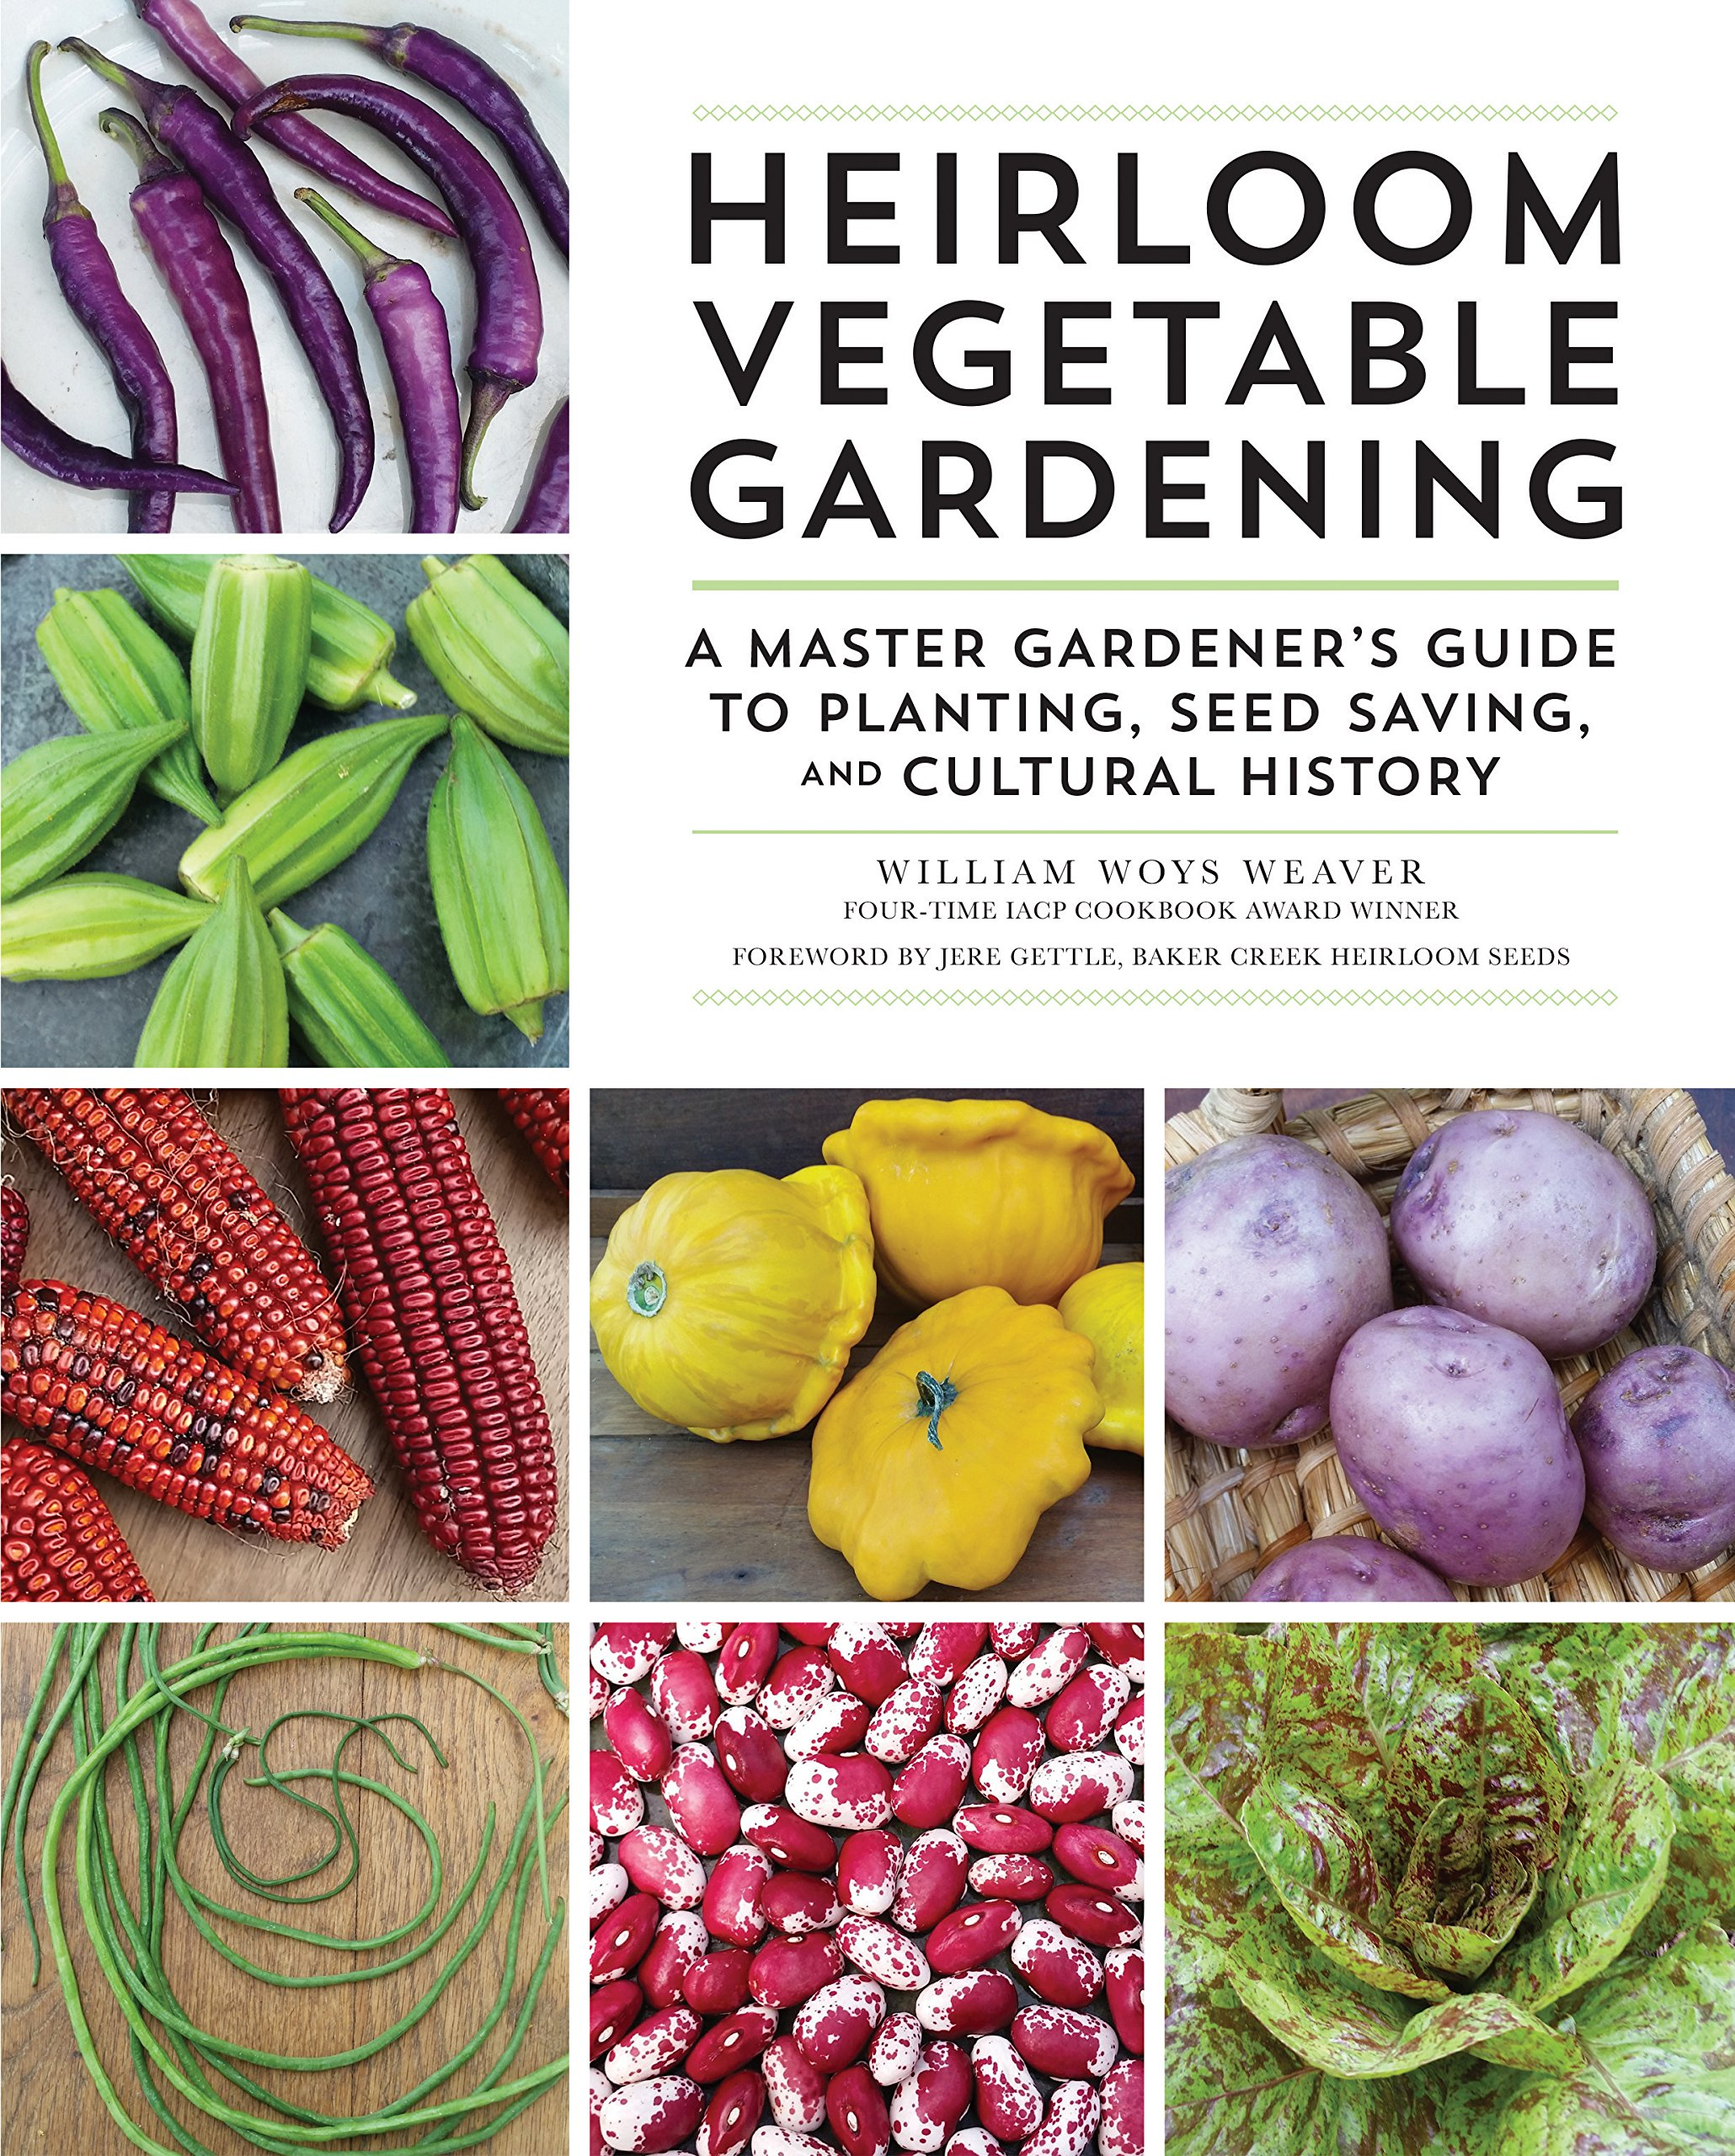 Heirloom Vegetable Gardening: A Master Gardener's Guide to Planting, Seed Saving, and Cultural History PDF